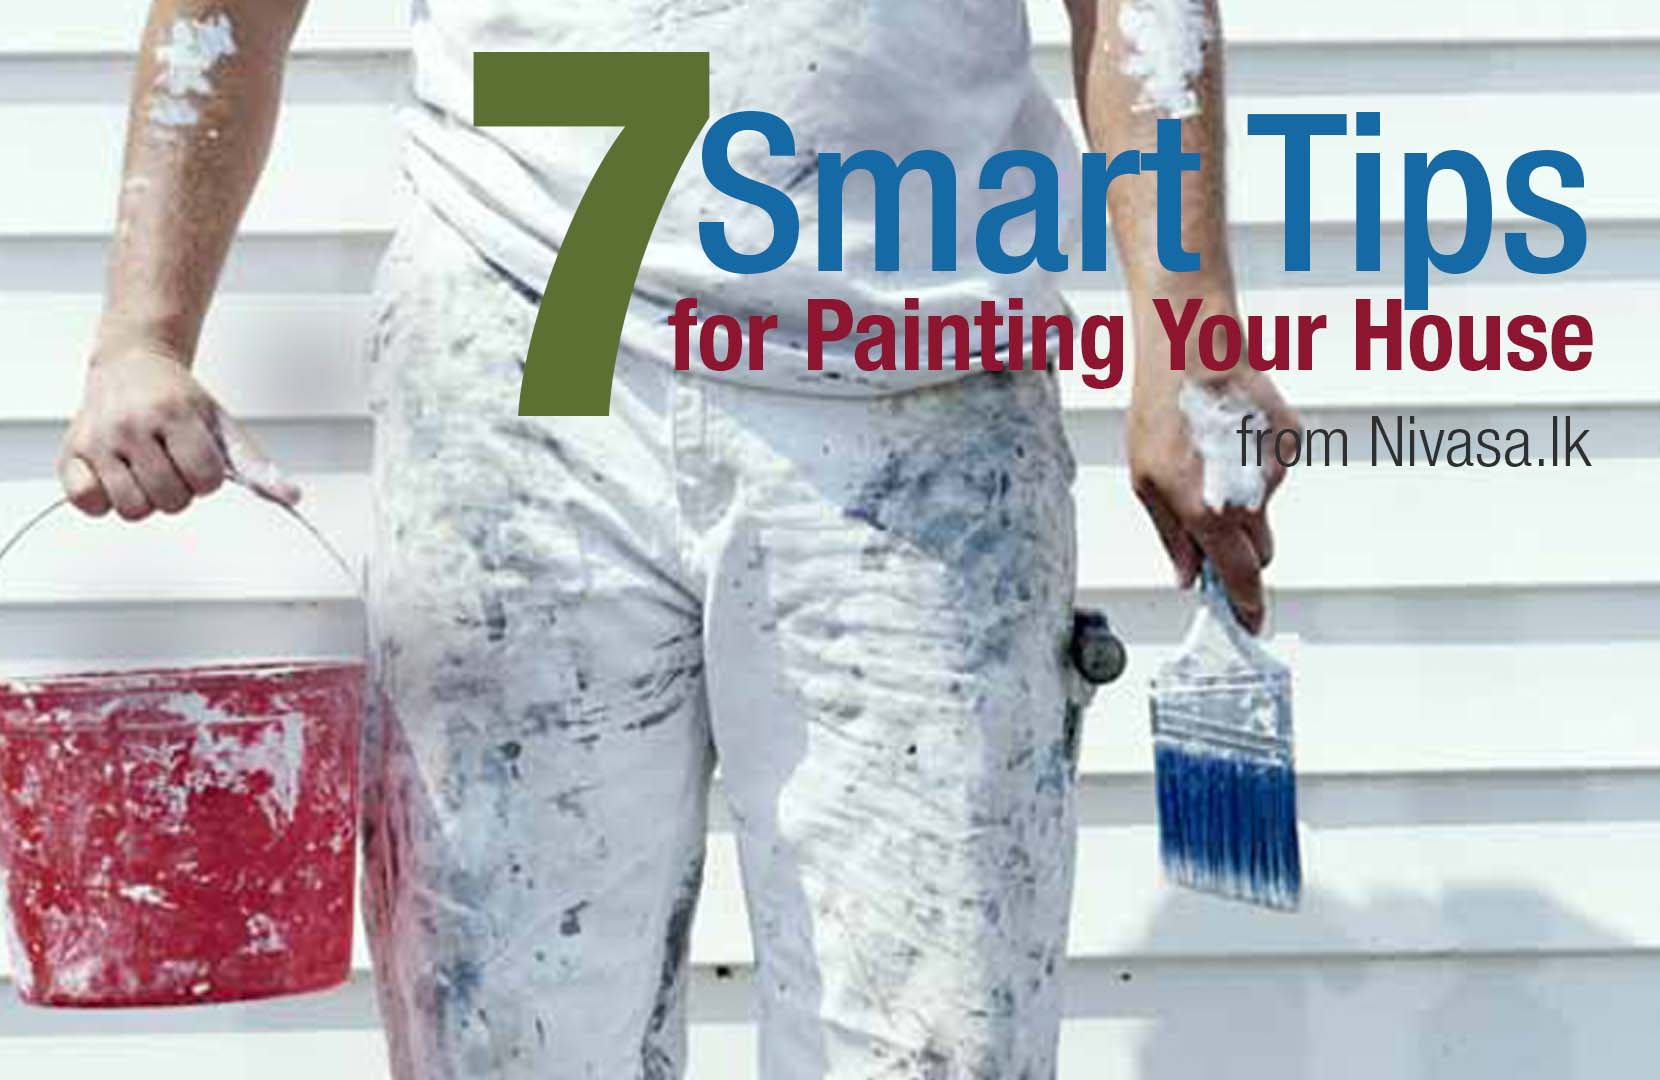 7 Smart Tips for Painting Your House